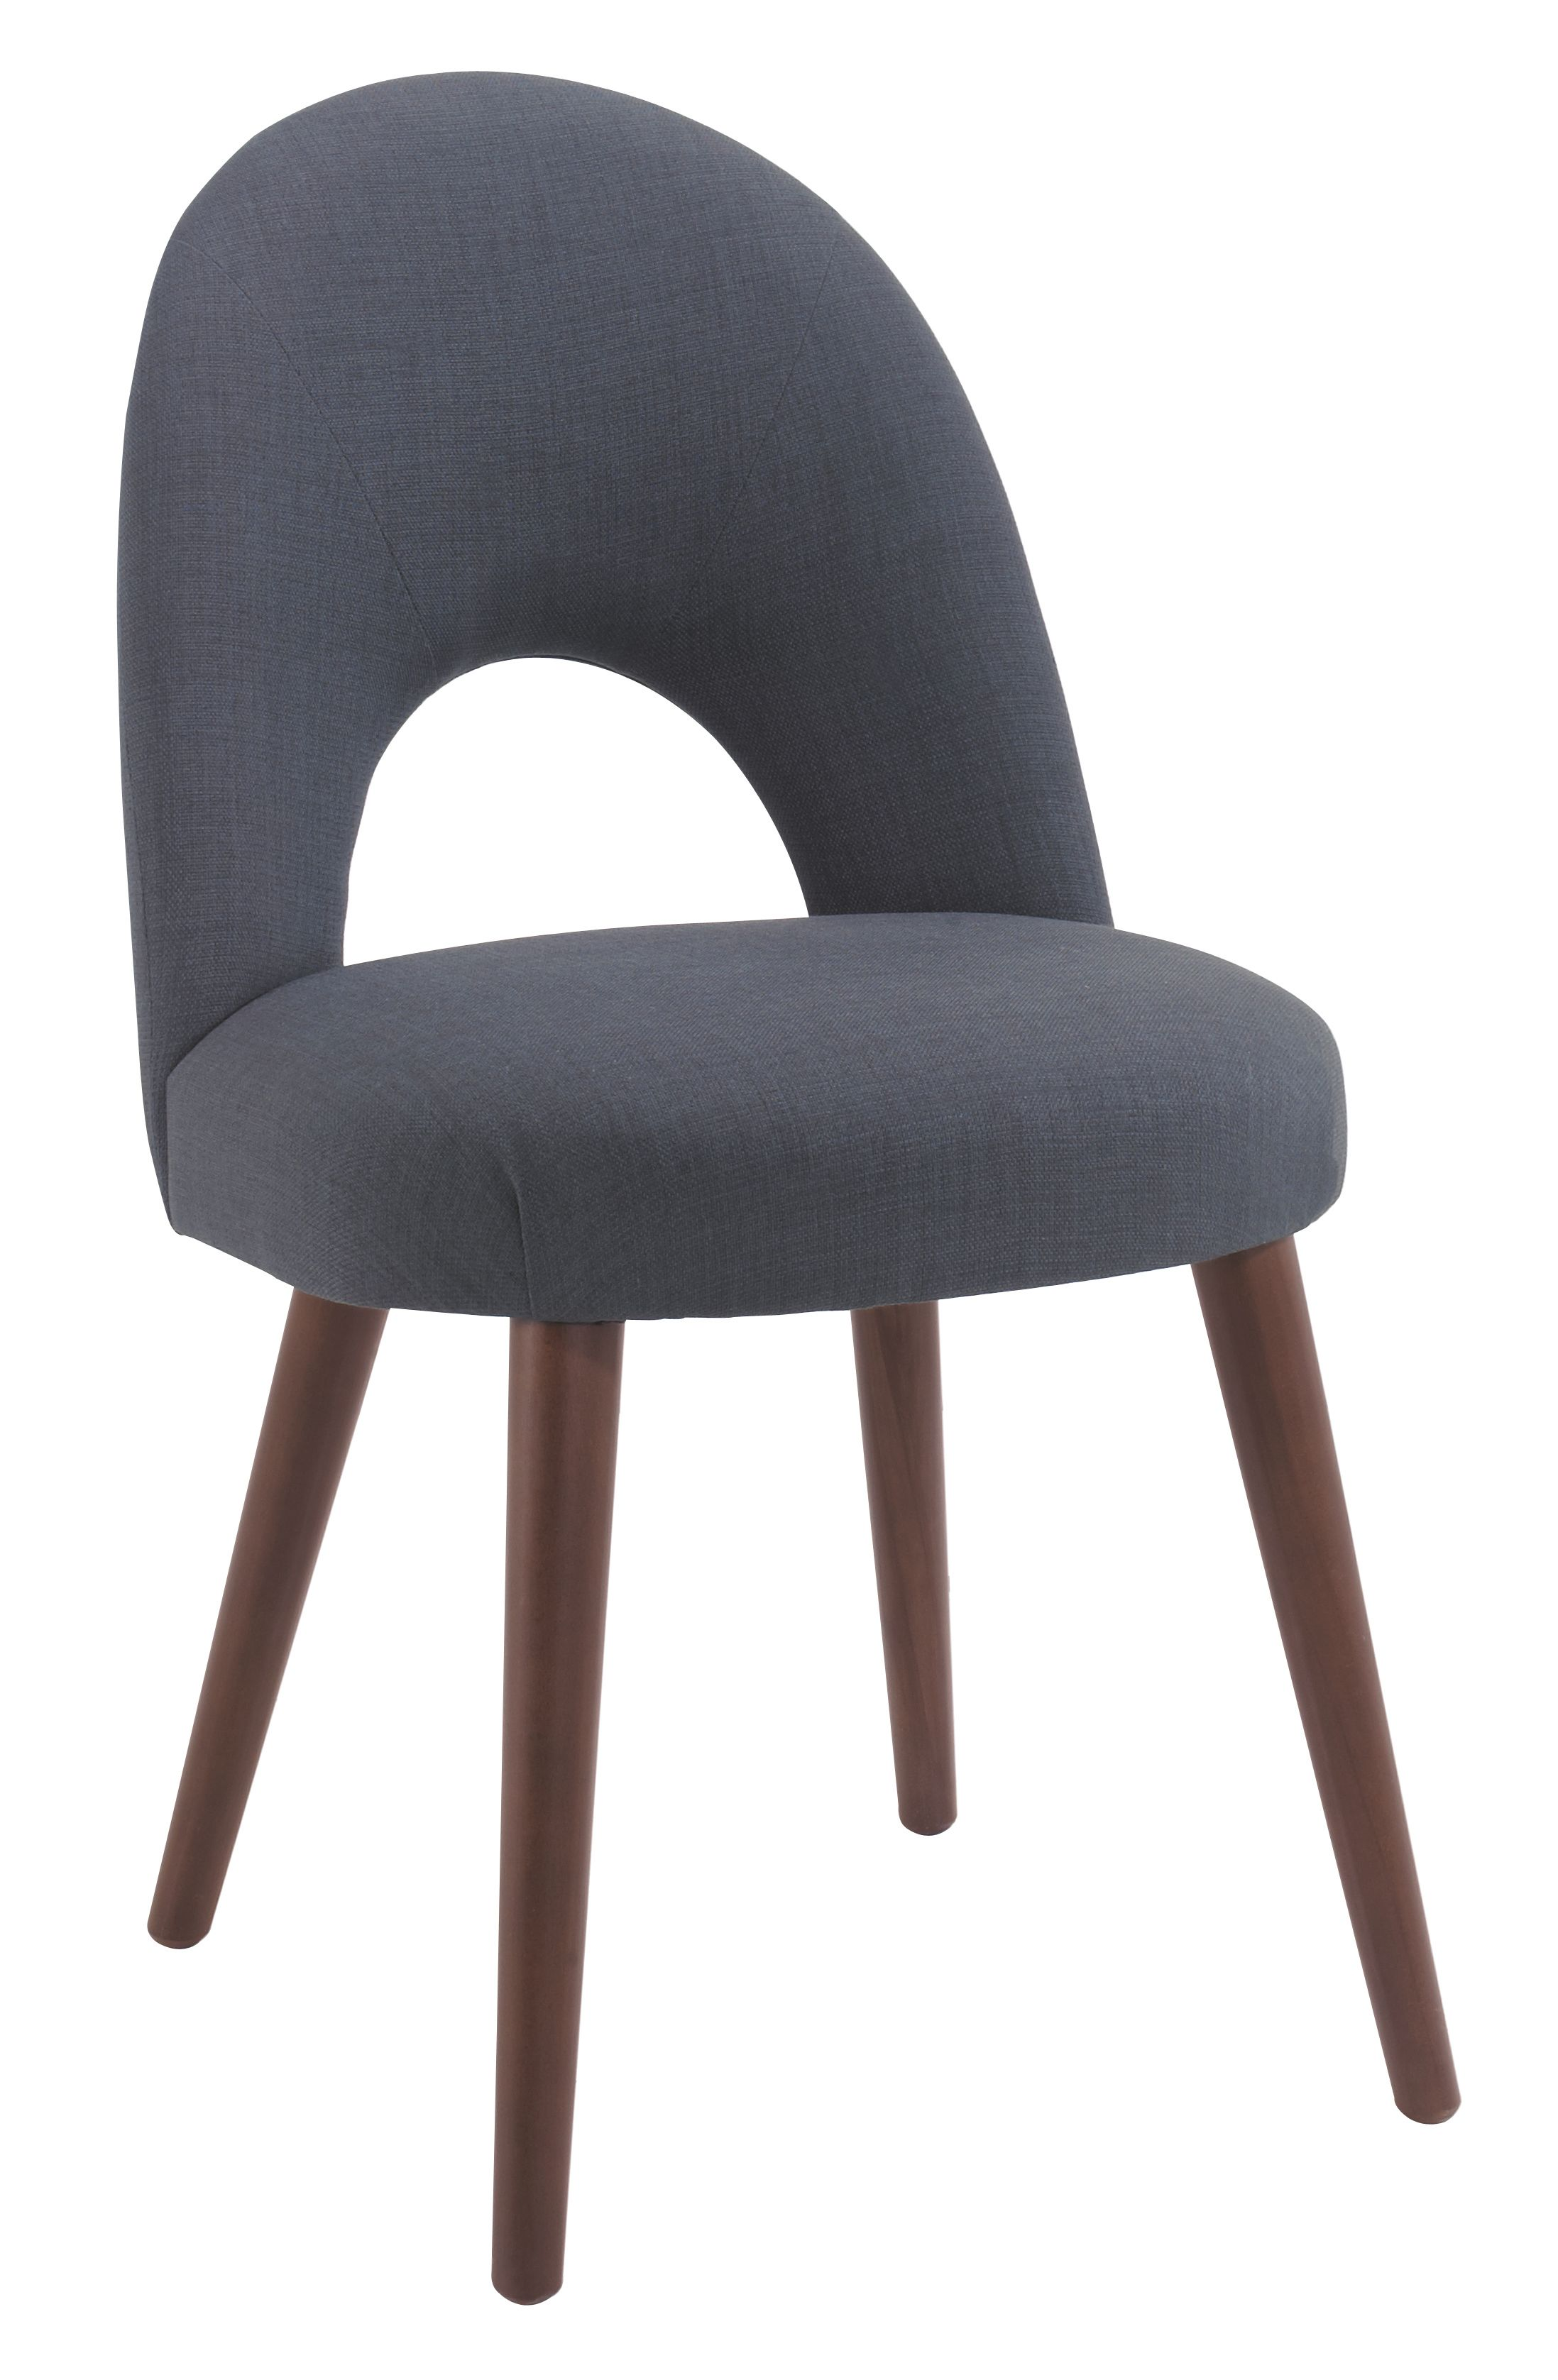 Dean upholstered dining chair pair